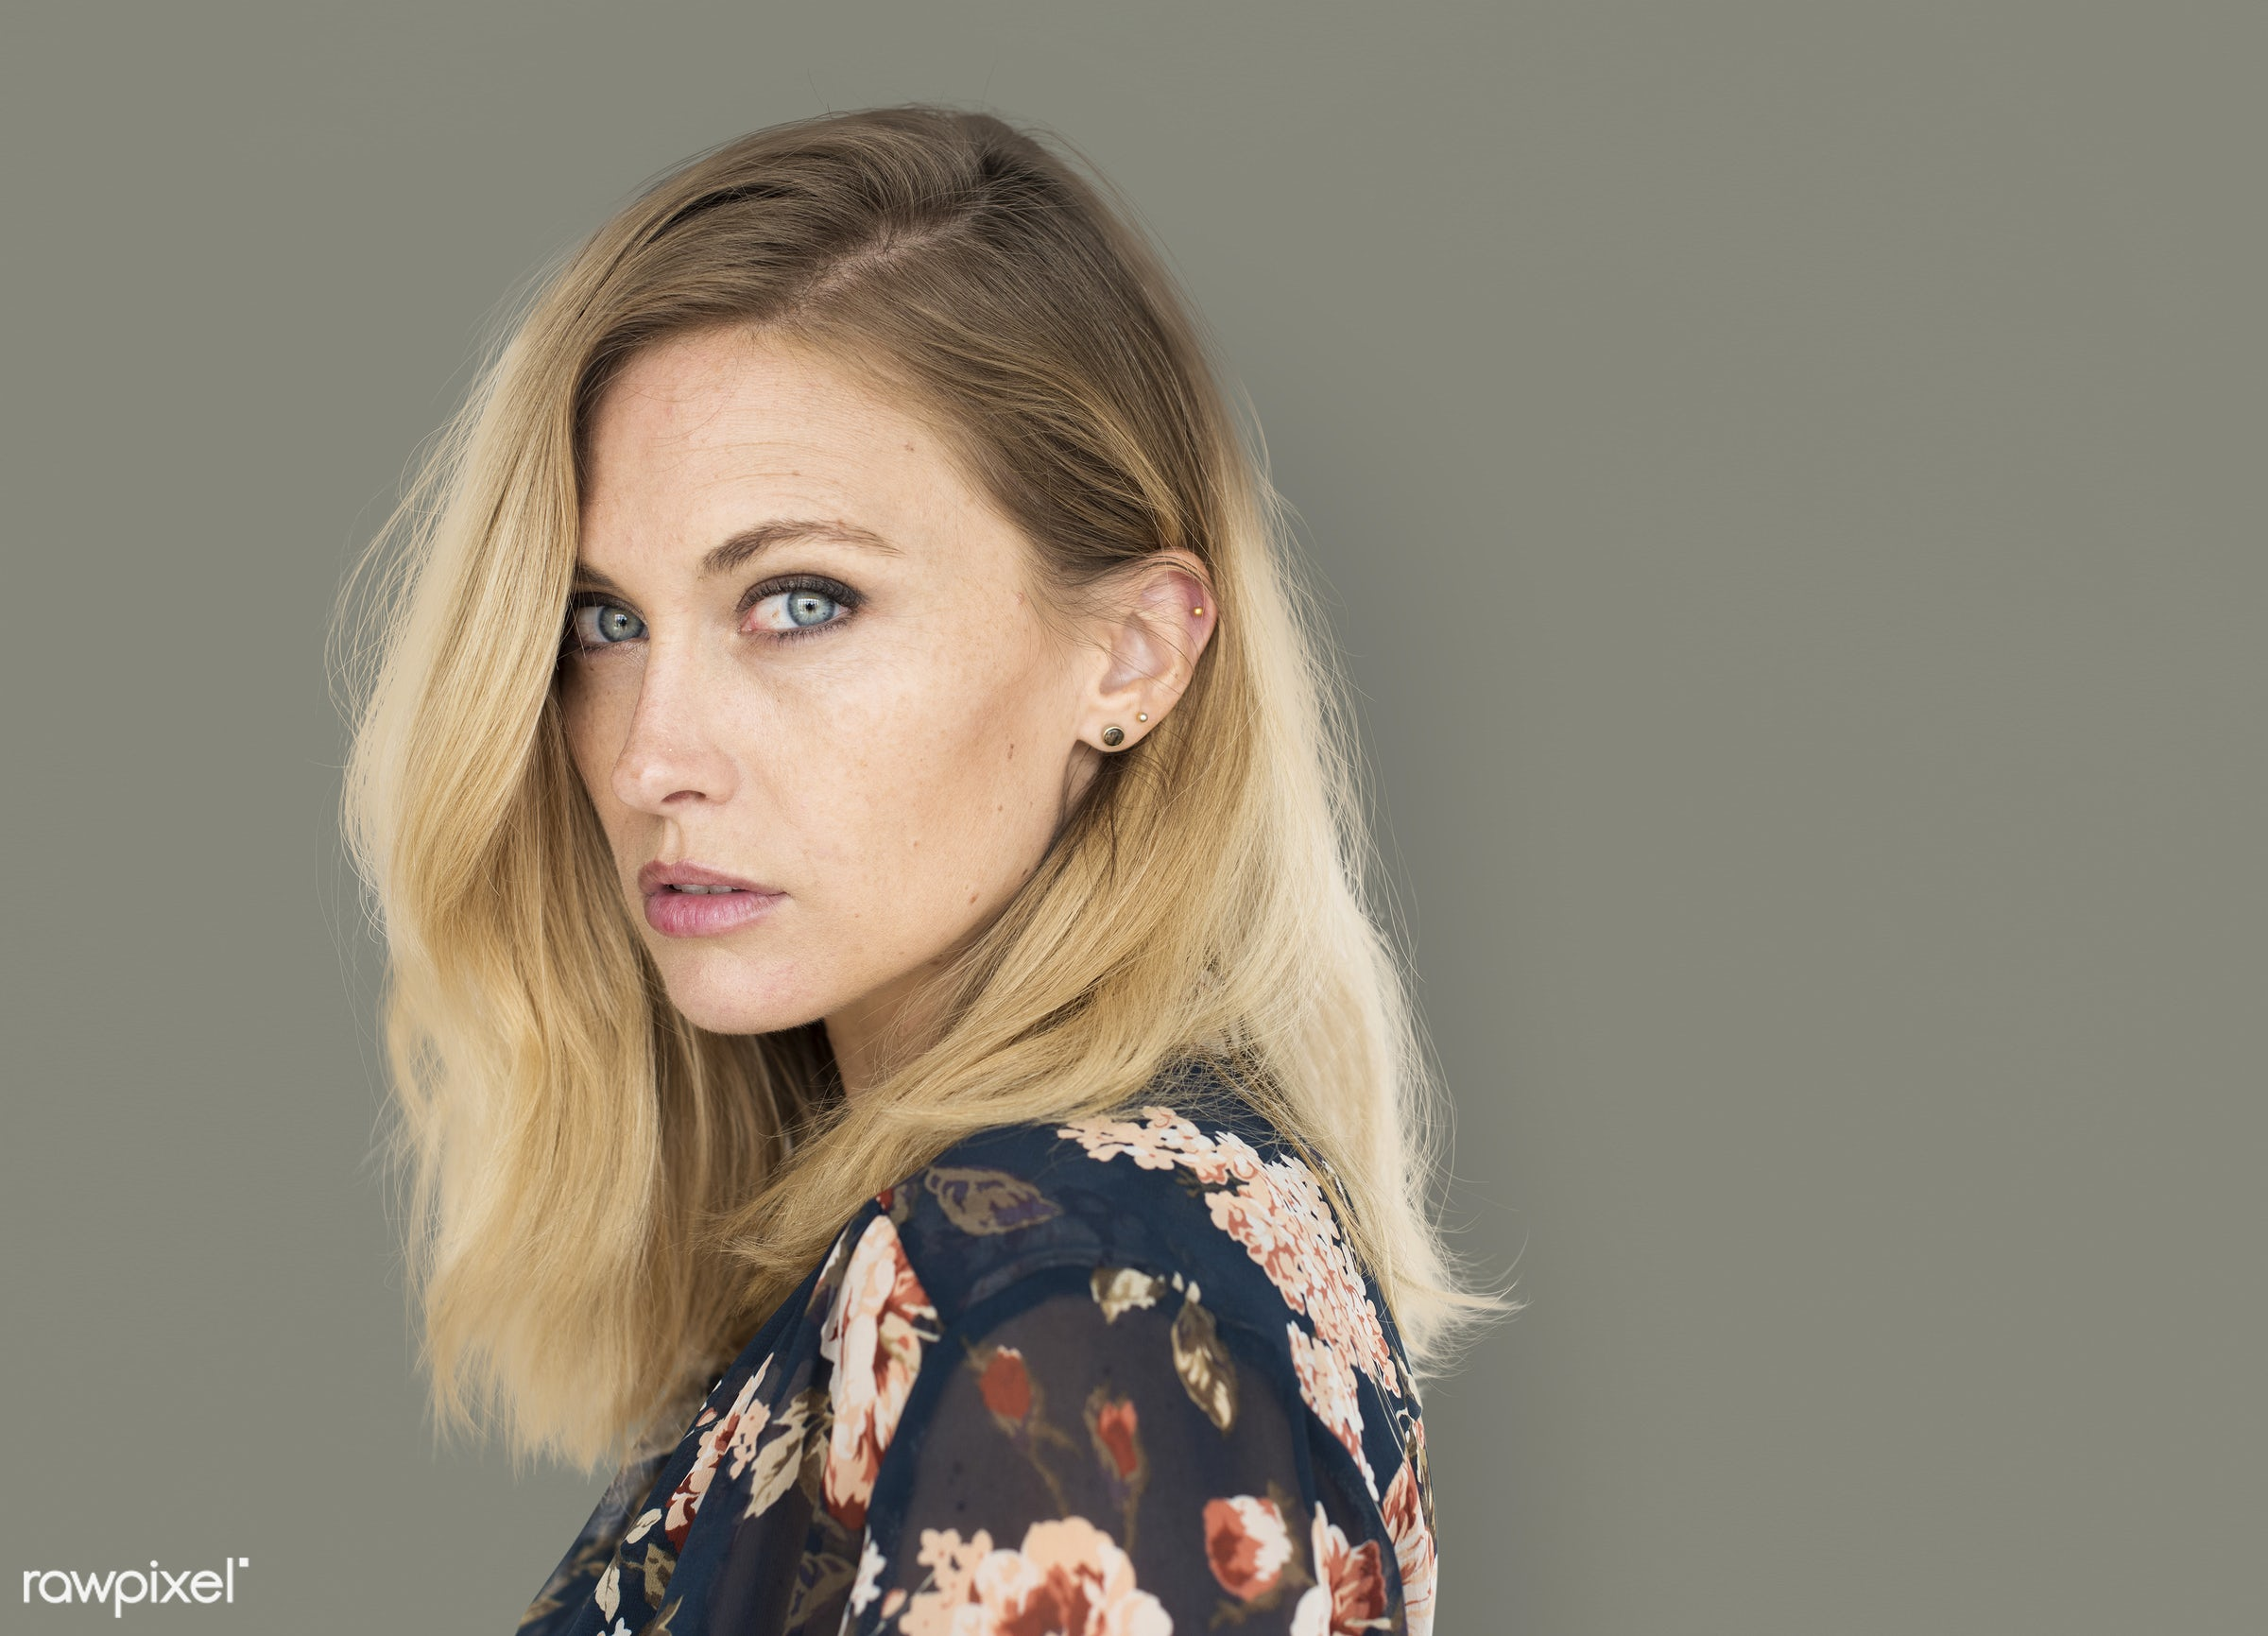 studio, expression, person, model, fashion, single, trendy, beauty, people, caucasian, looking, style, woman, lifestyle,...